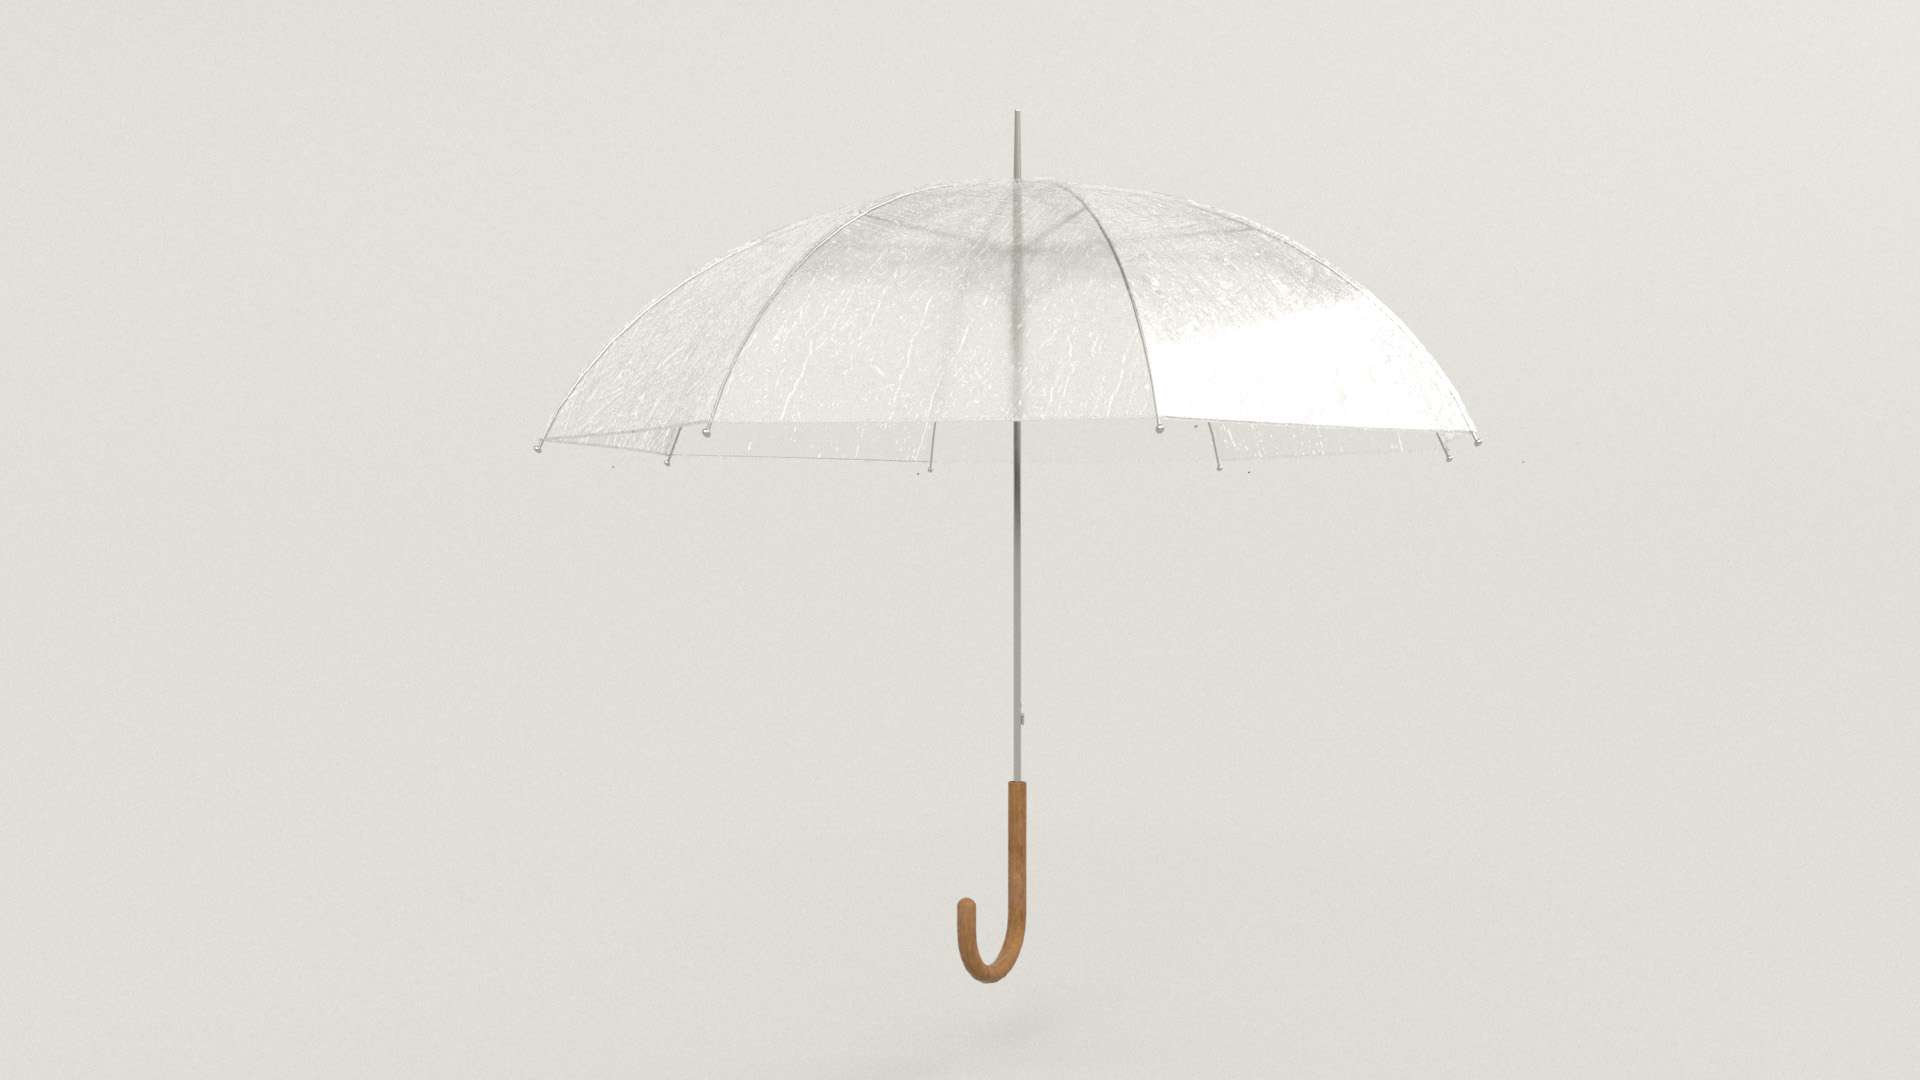 Figure 36: Lookdev test of the umbrella, with wet effect applied.